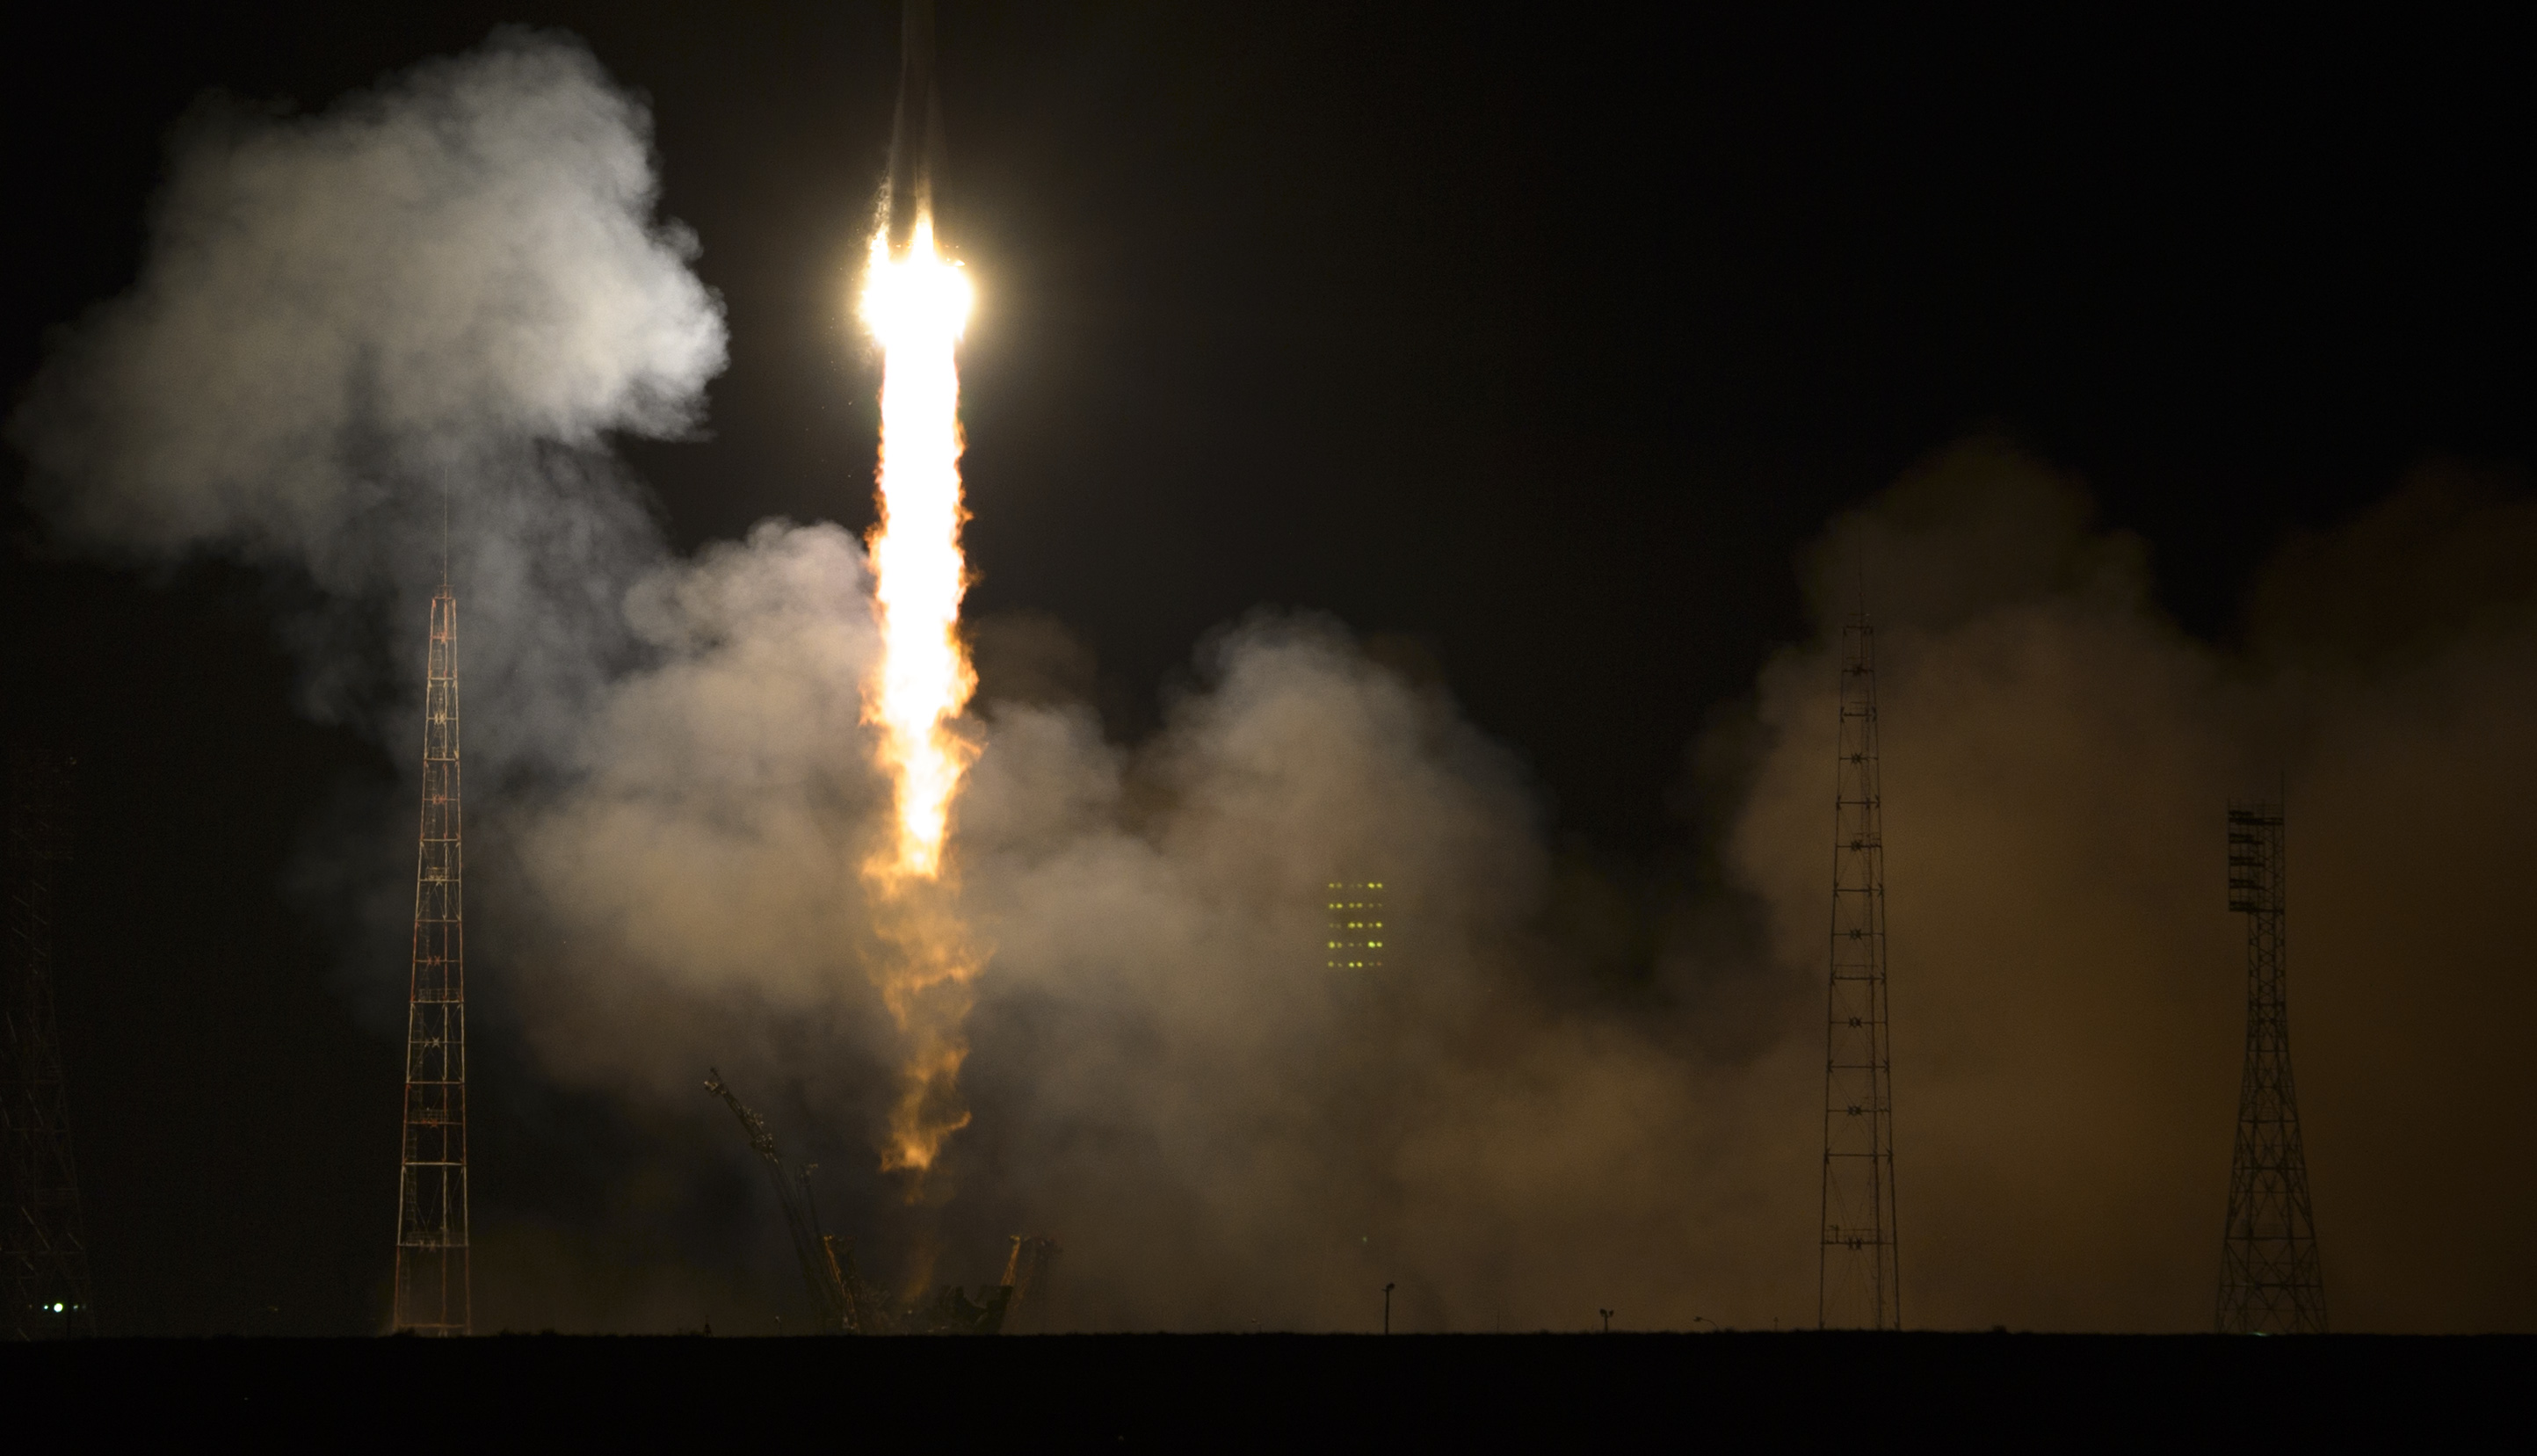 The Soyuz TMA-12M rocket launches to the International Space Station, March 26, 2014 at the Baikonur Cosmodrome in Kazakhstan.